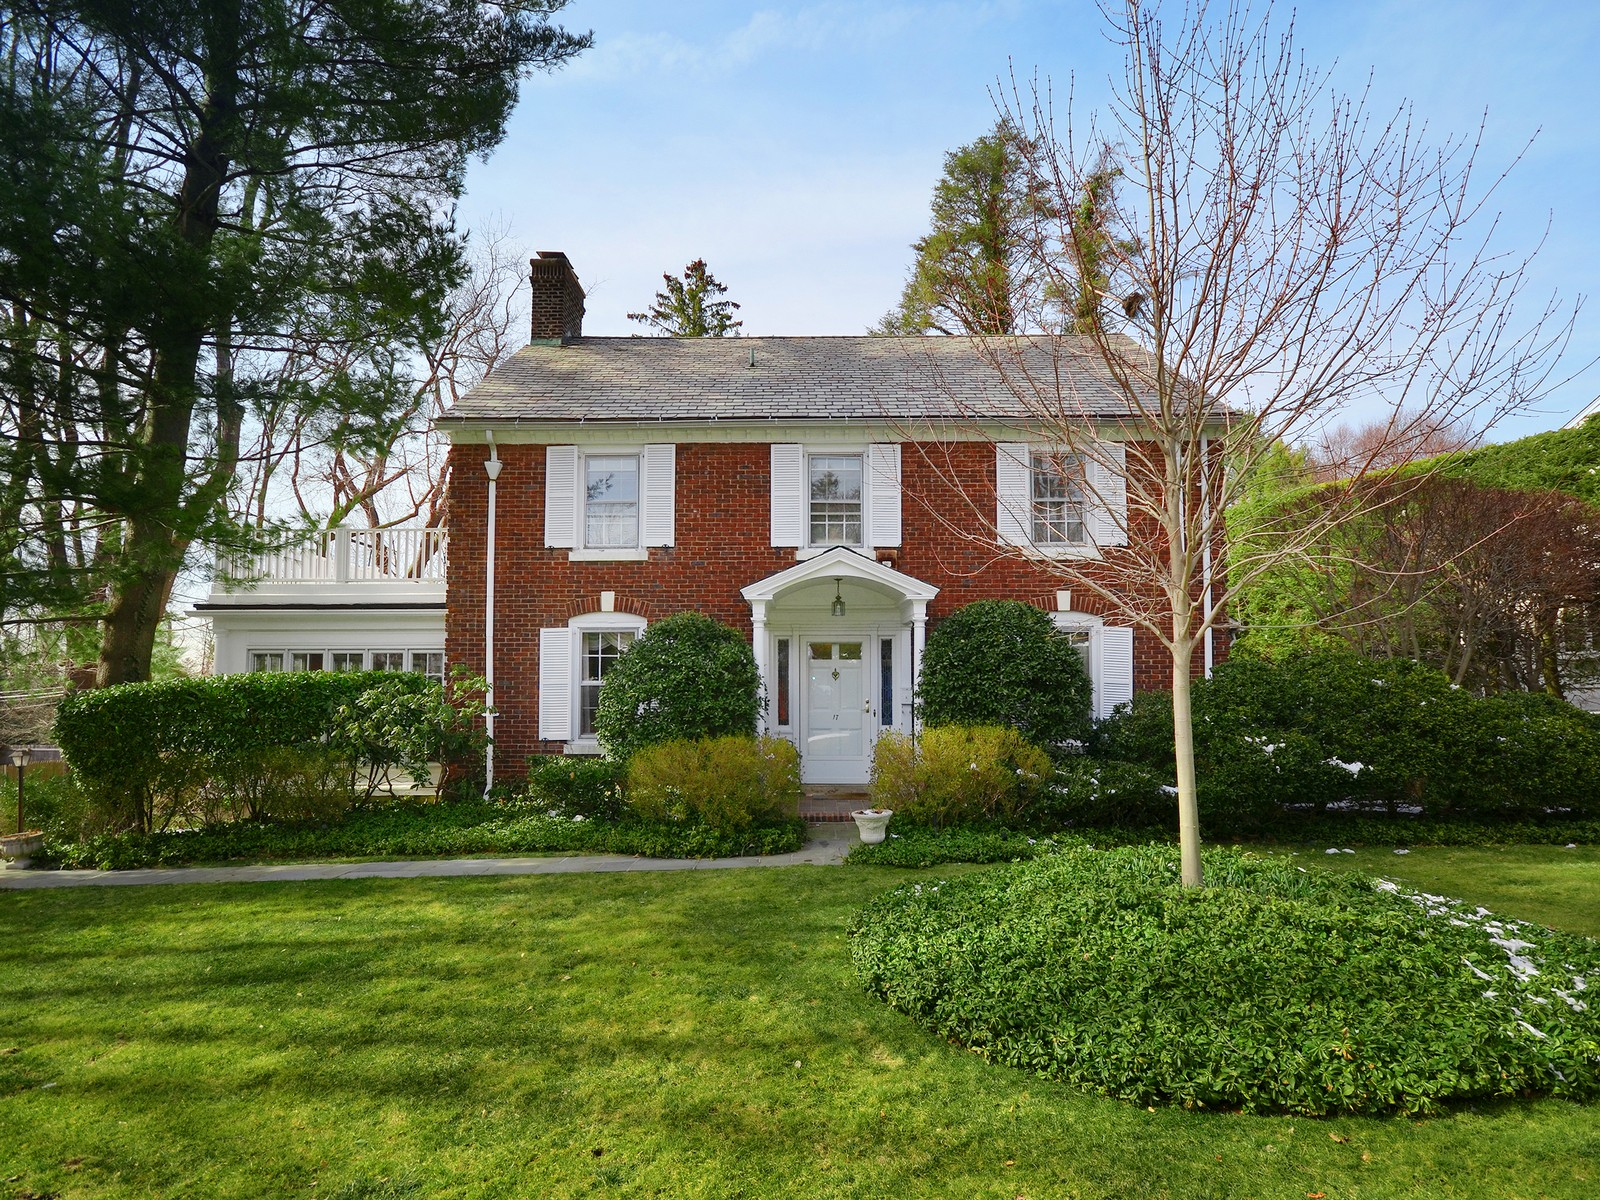 Single Family Home for Sale at Colonial 17 Beacon Hill Rd Port Washington, New York, 11050 United States